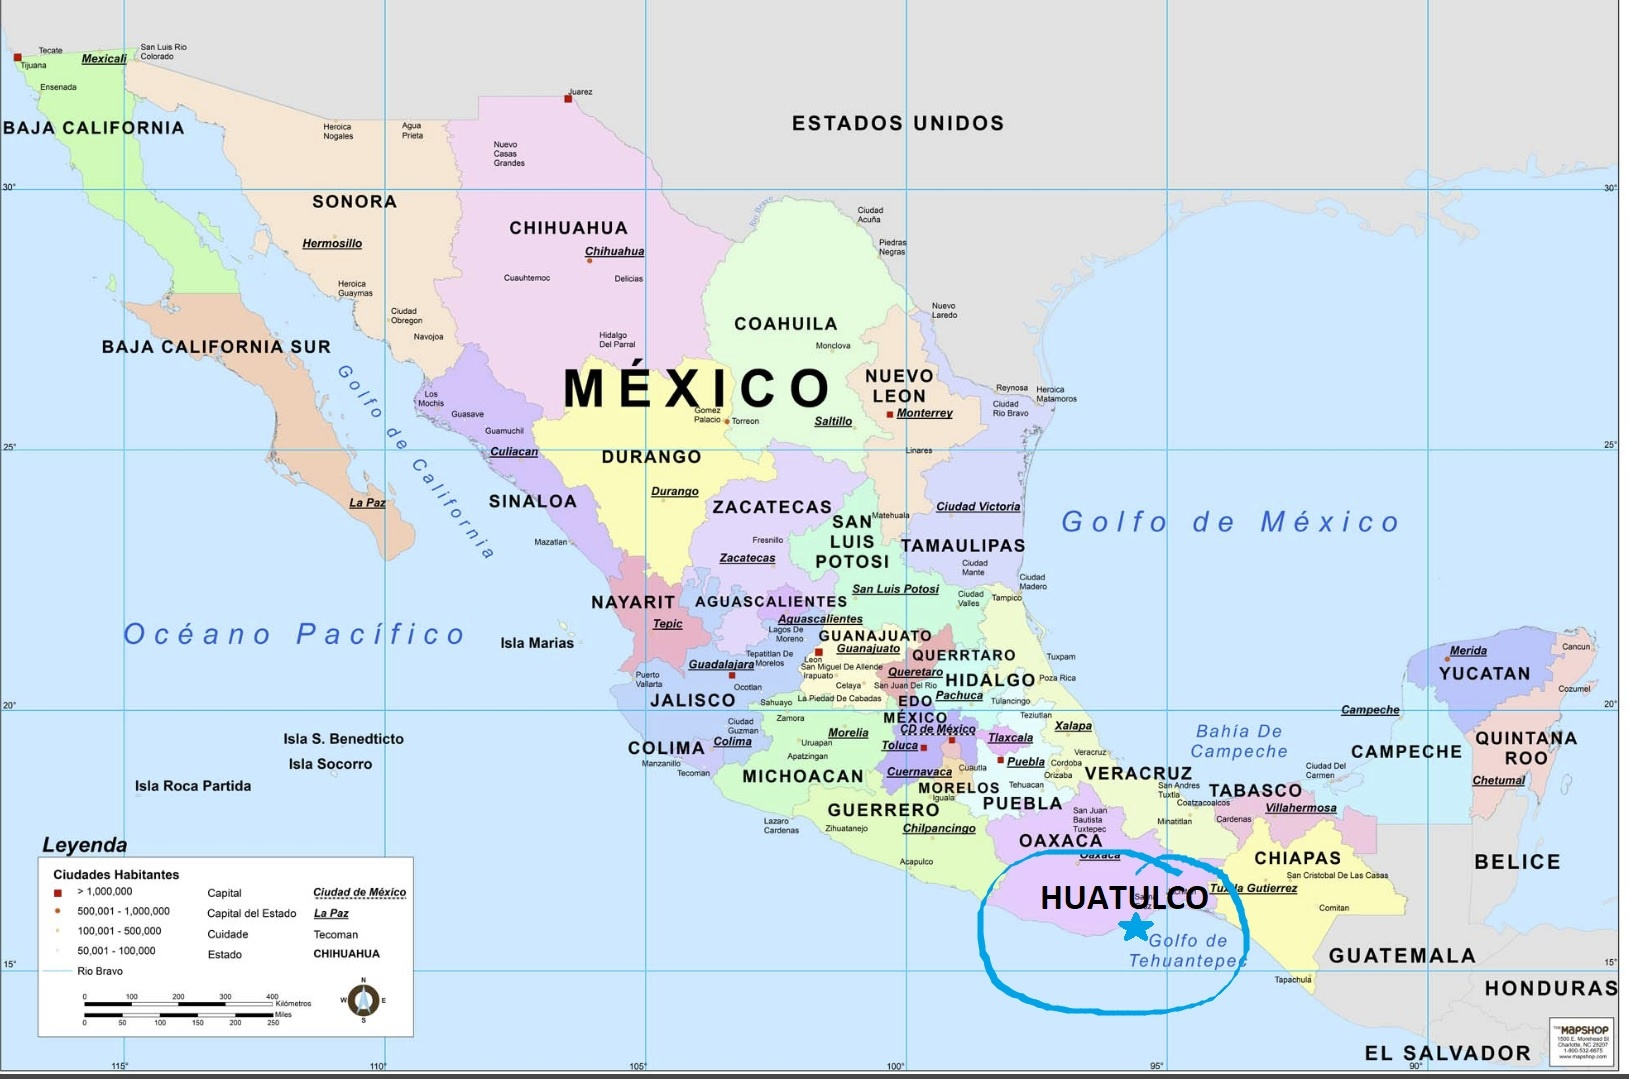 Where is Huatulco?